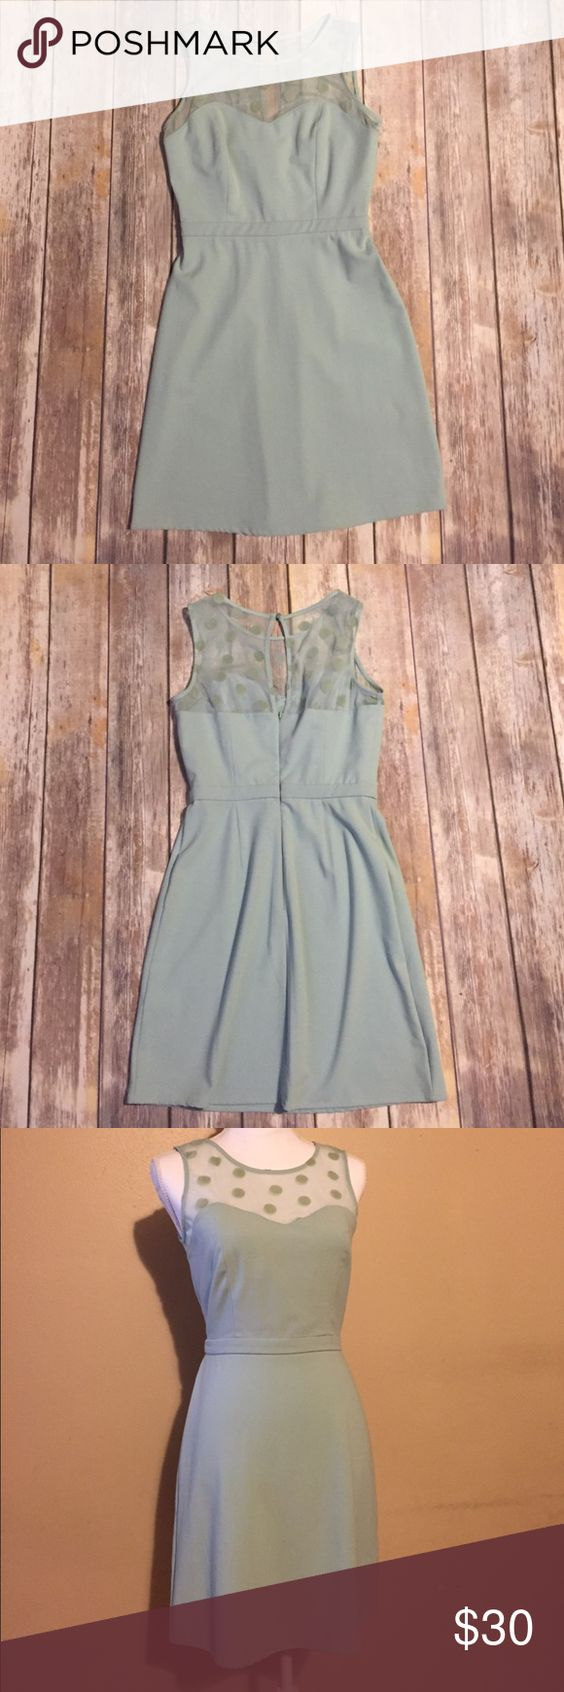 Lauren Conrad - Mint Green Dress with Polka Dots EUC -This will end up being your new favorite dress! It's a simple silhouette with an empire waist, sweetheart neckline and polka dot sheer top. The color is a light mint green. Zipper is located in the back. 58% polyester 35% rayon 7% spandex LC Lauren Conrad Dresses Midi